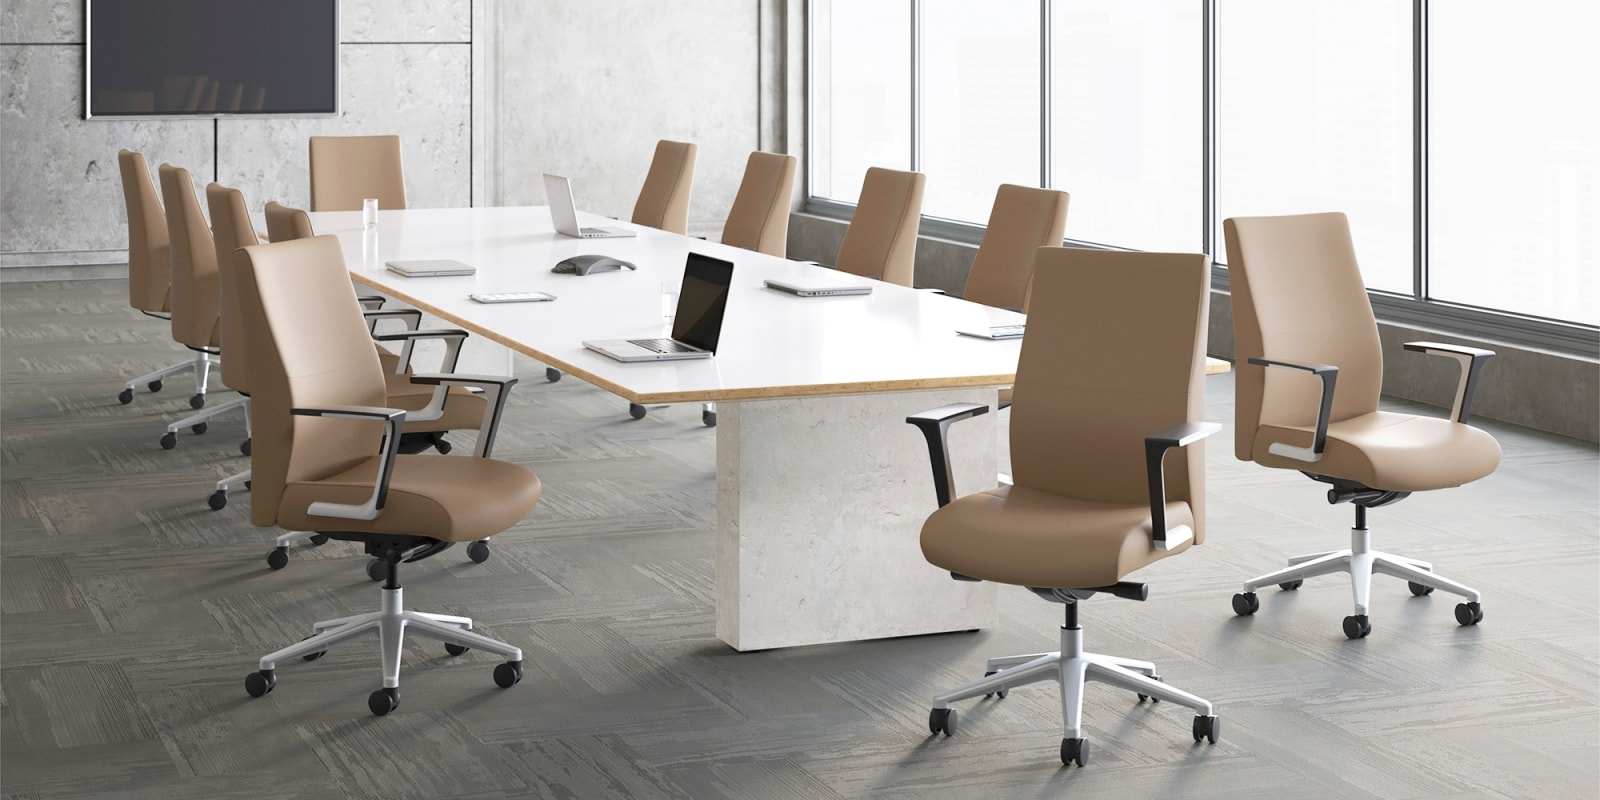 Ergonomic Executive Conference Room Chairs